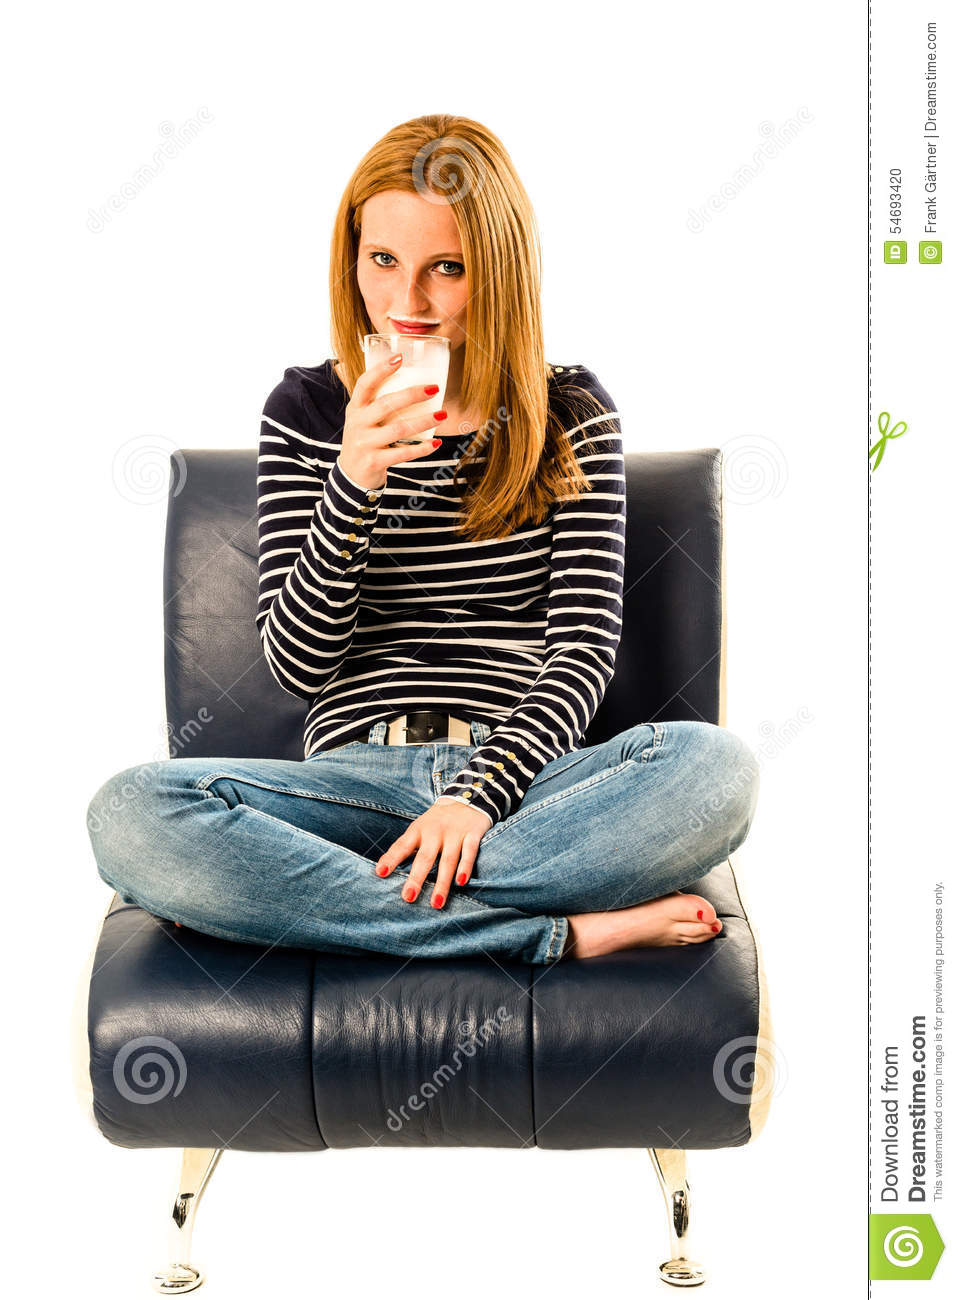 Milk moustache stock photo image 54693420 for Sitting easy chairs